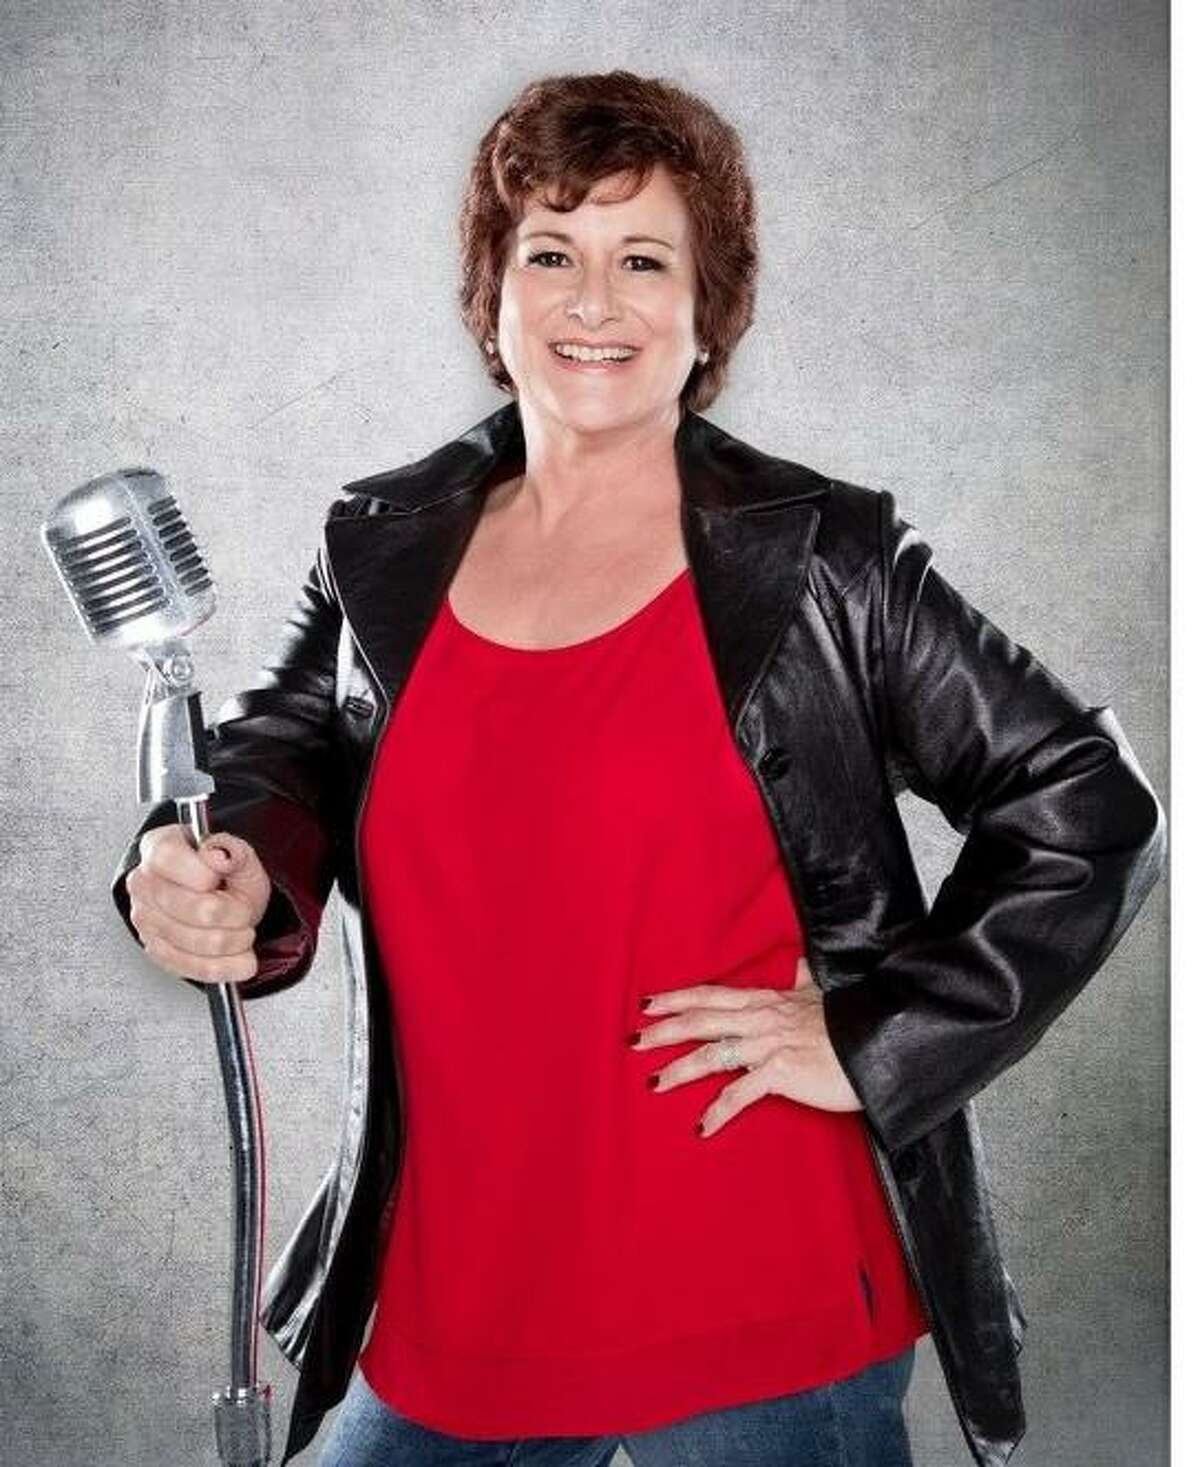 COMEDY NIGHTS: New Haven-raised Angela Nacca will be one of three comics performing at Square Foot Theatre & Tavern, 950 Yale Ave., Wallingford, on Friday and Saturday, Aug. 16-17, at 8 p.m. Also performing will be Jess Miller and Cindy-Ann Jane. See SquareFootTheatre.com/comedy.